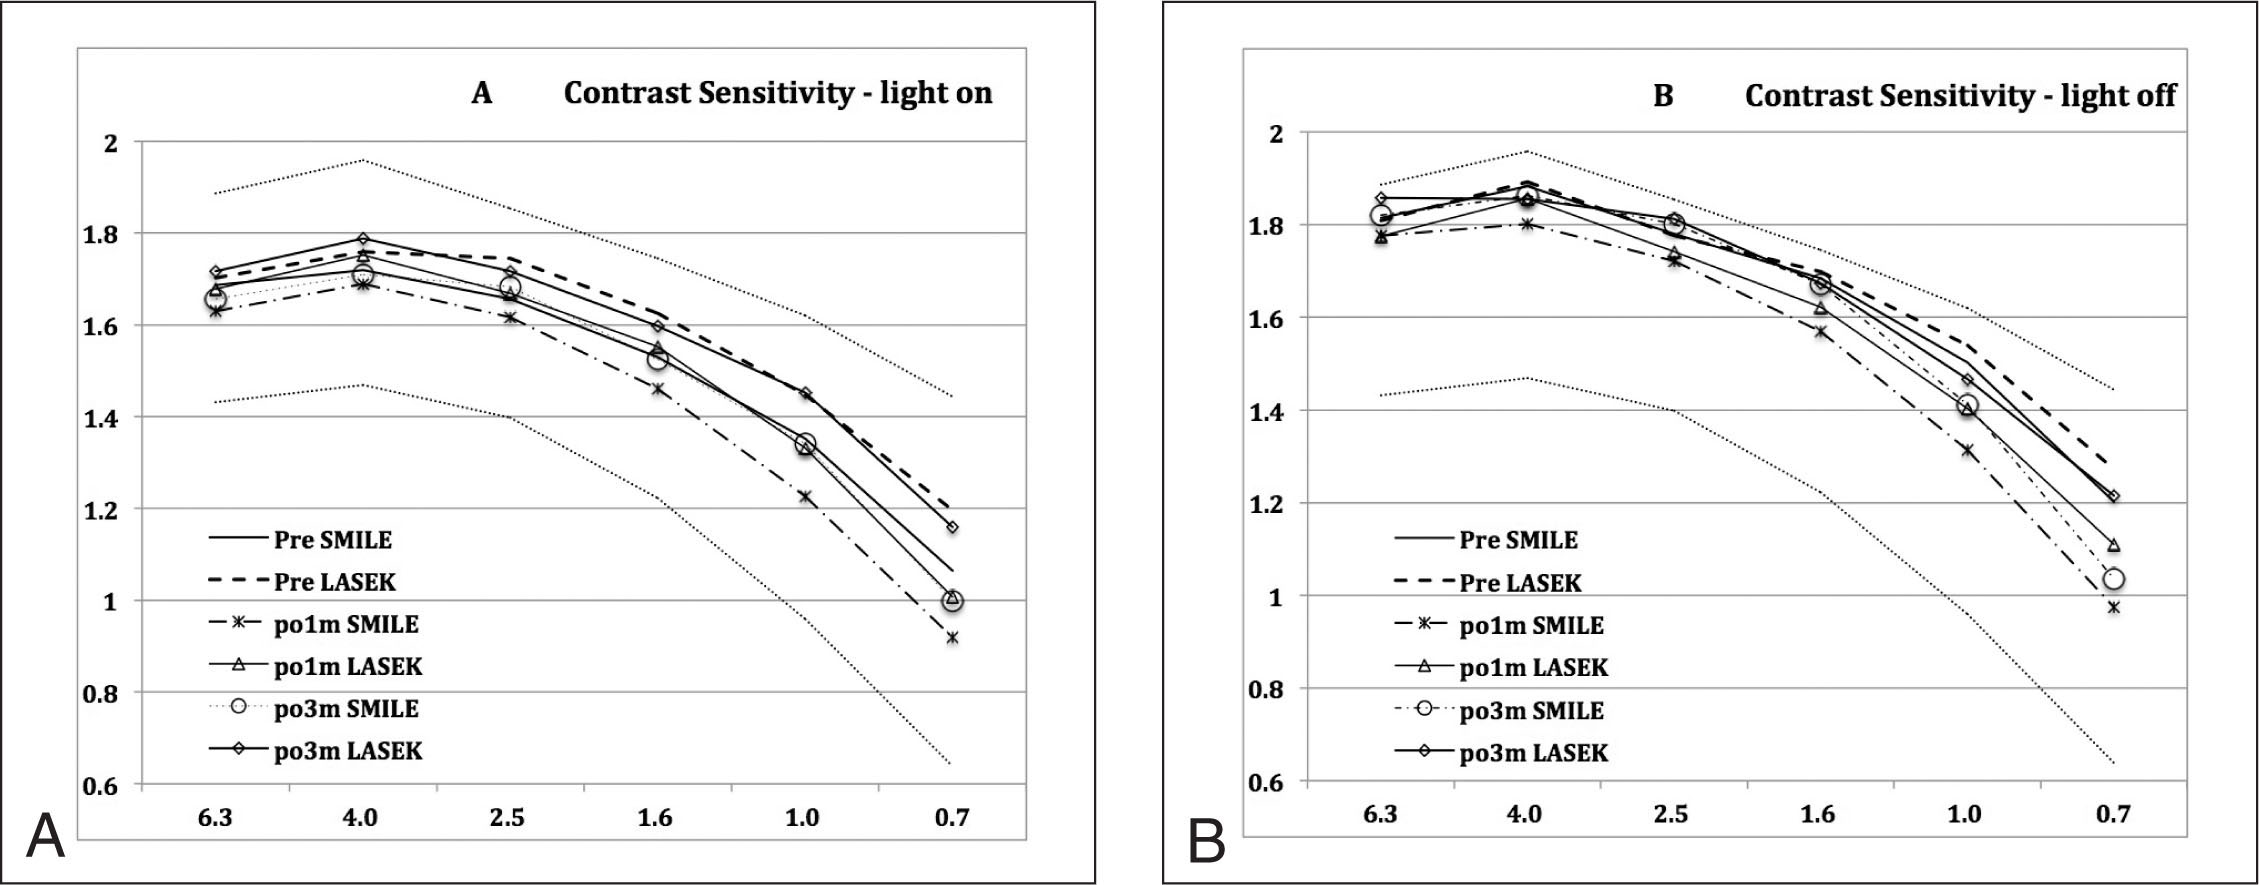 Comparison of (A) photopic and (B) scotopic contrast sensitivity between the small incision lenticule extraction (SMILE) and laser-assisted subepithelial keratomileusis (LASEK) groups at all spatial frequencies (6.3° to 0.7°), preoperatively and postoperatively. Horizontal axis corresponds to visual angle of target size (degree). Vertical axis corresponds to log10 contrast sensitivity.